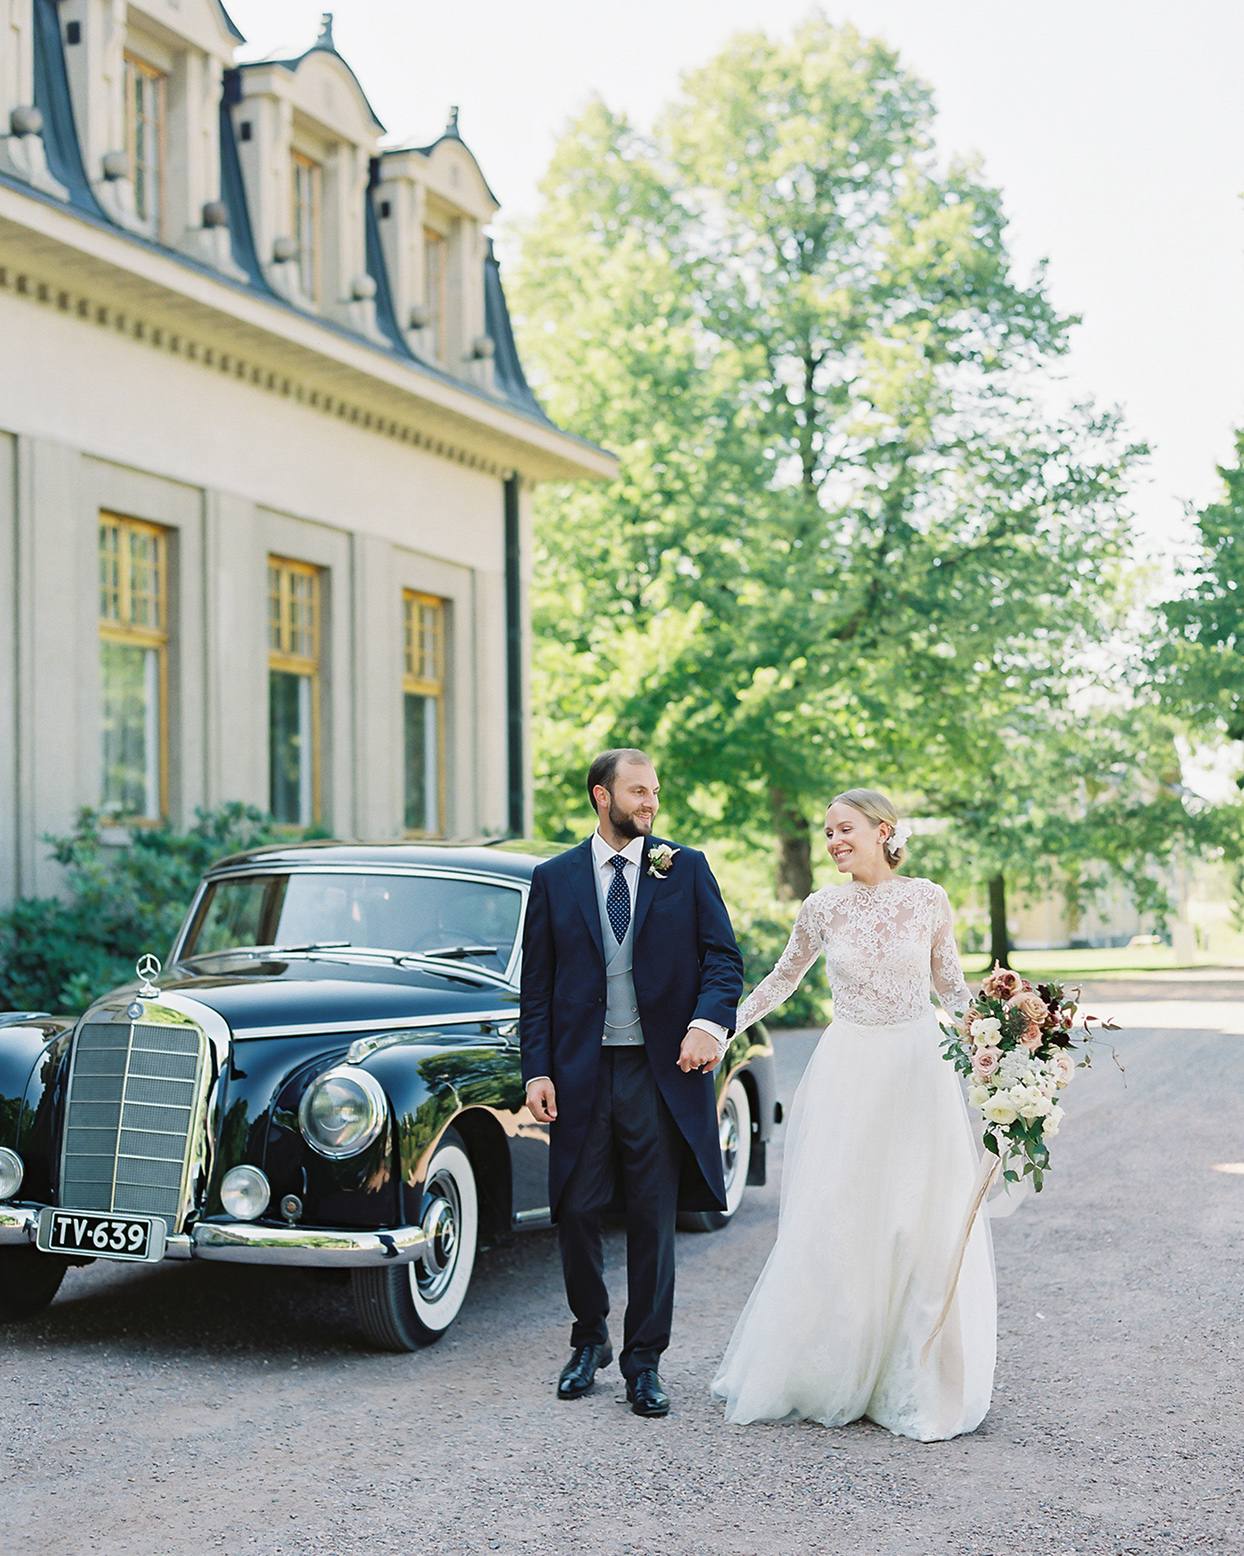 laura alexander couple walking by wedding car